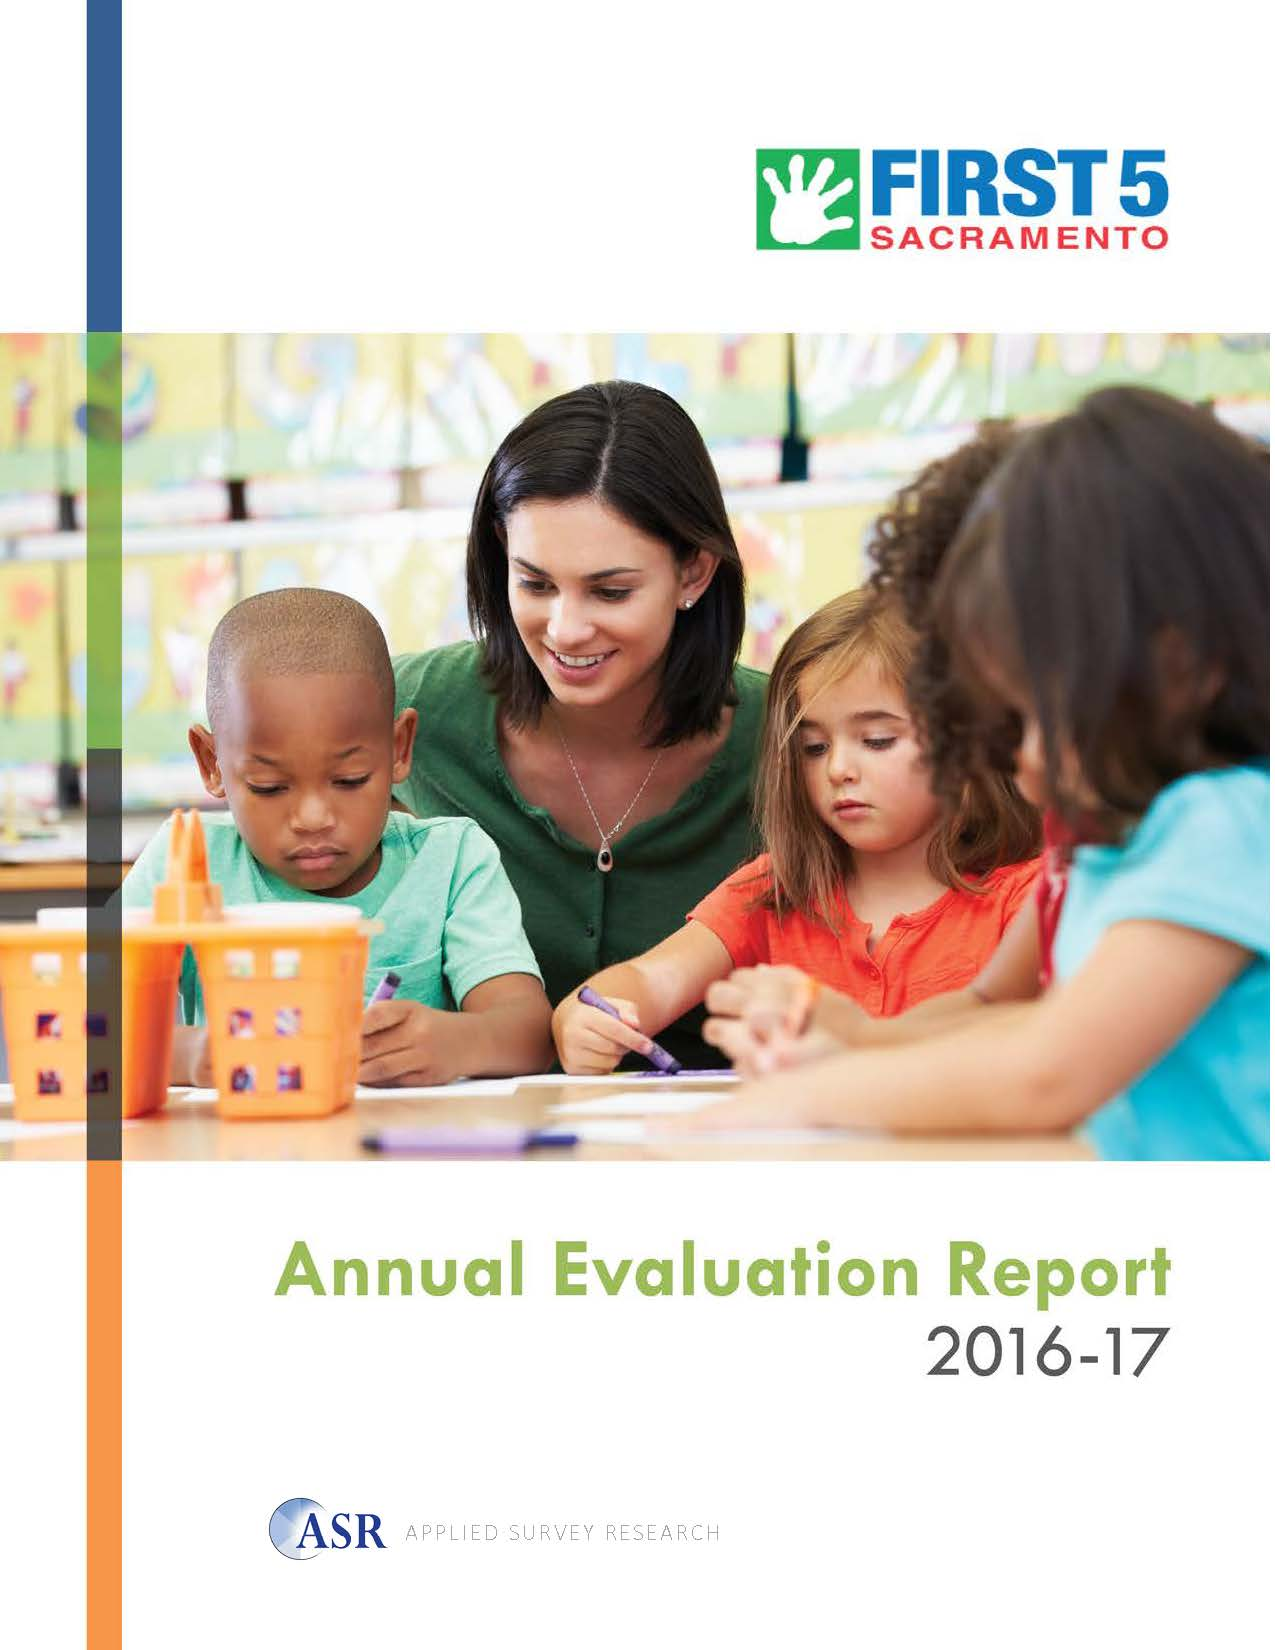 First 5 Sacramento Annual Evaluation Report 2016-17   Report Presentation